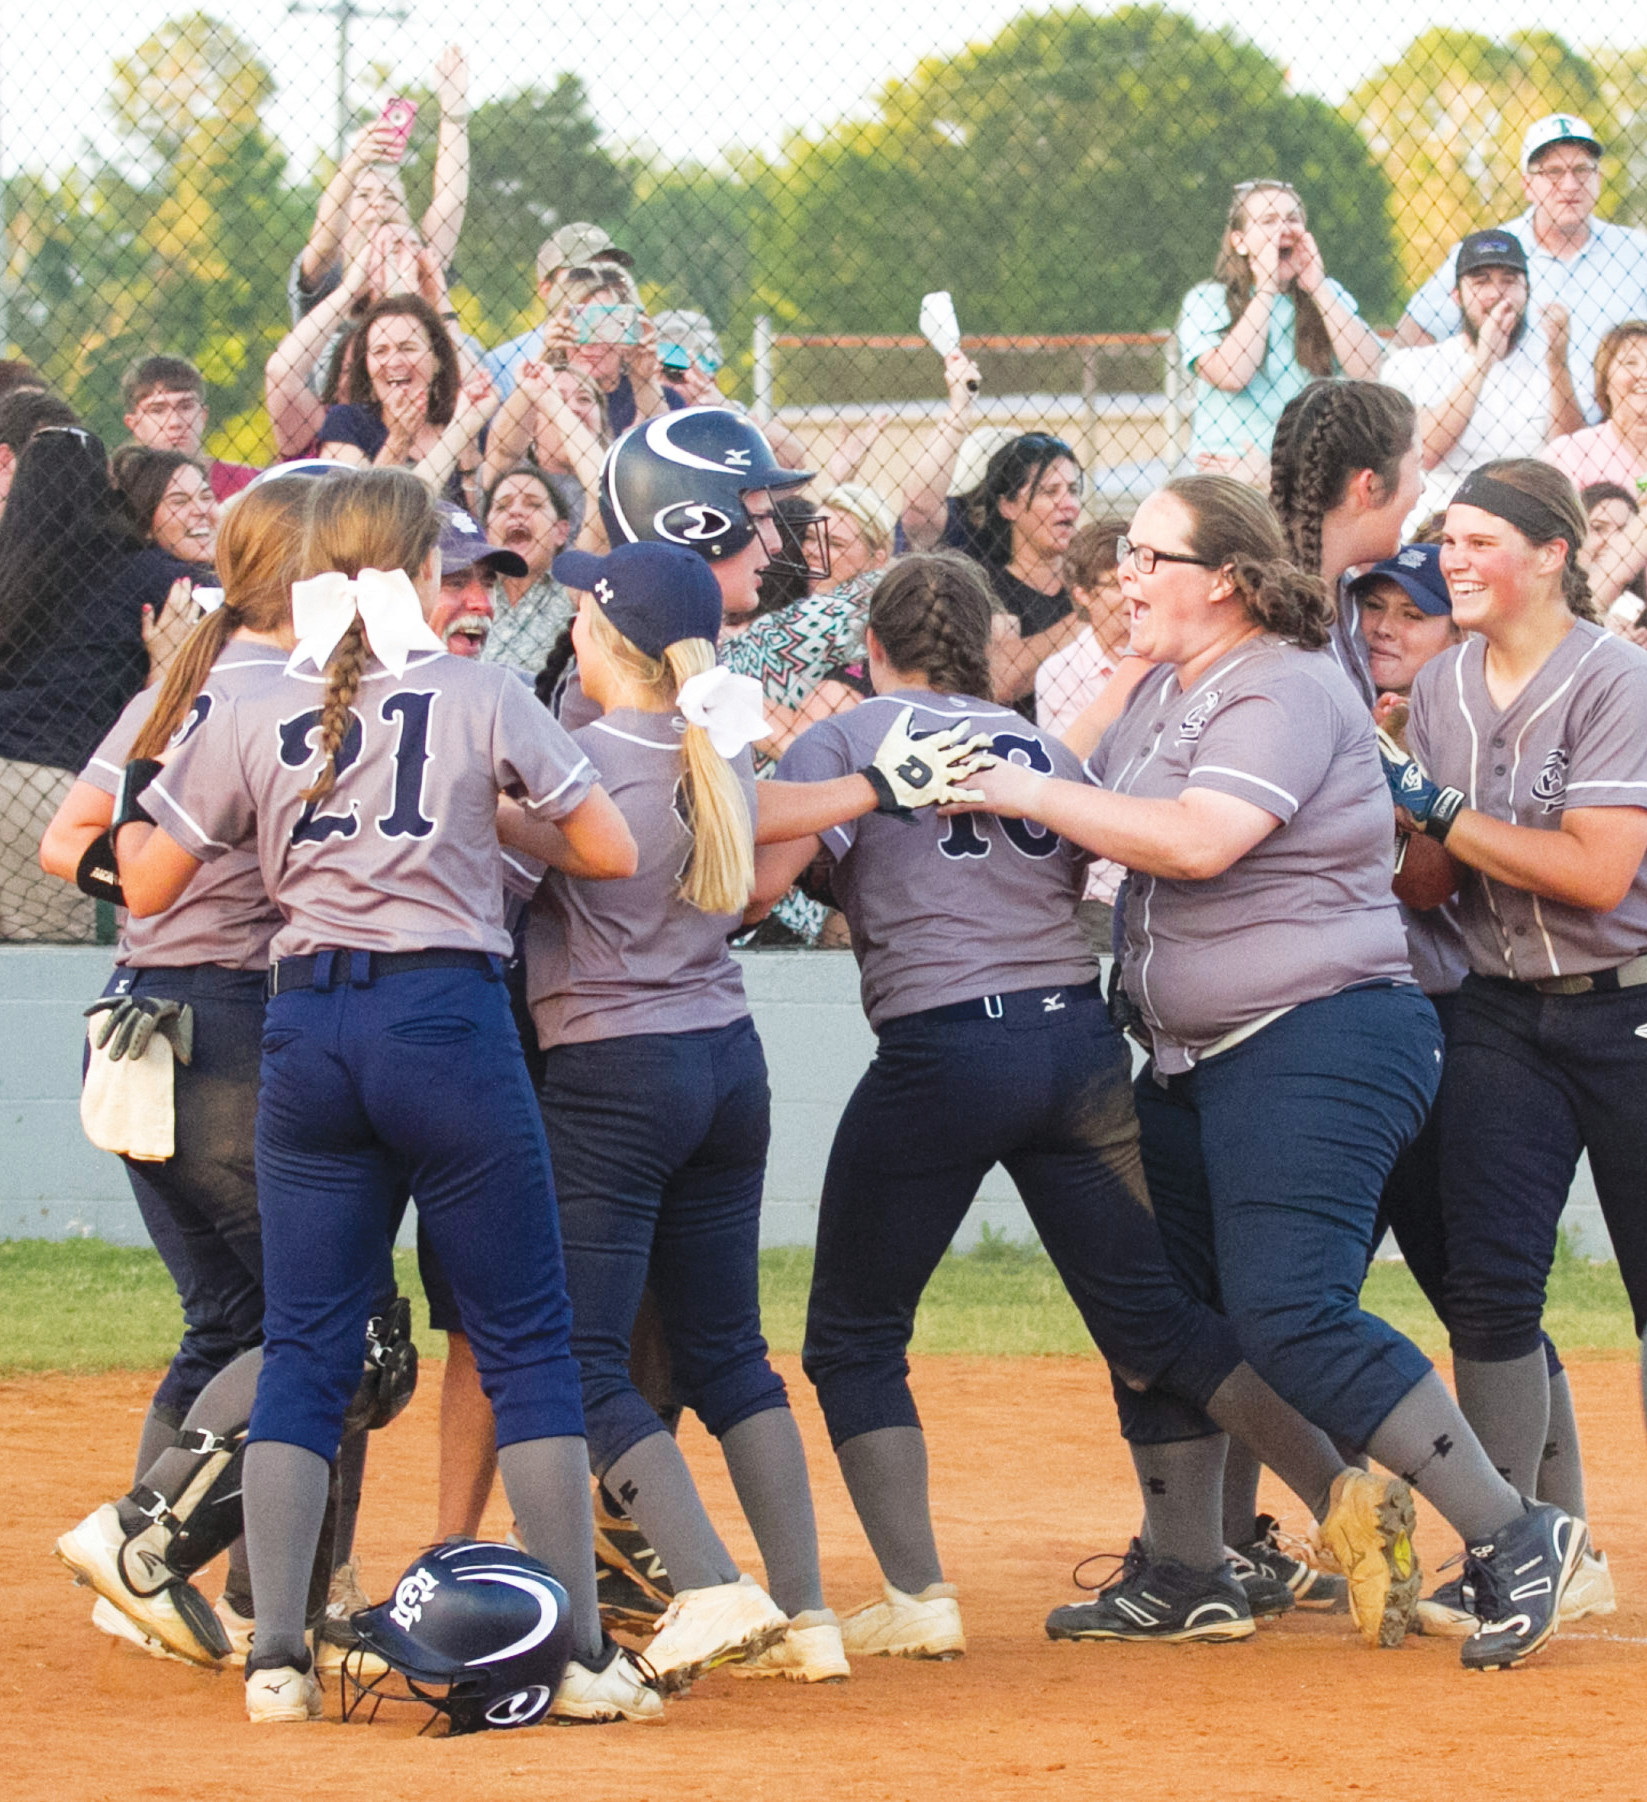 The East Clarendon softball team celebrates after rallying to defeat Dixie 4-3 on Wednesday to claim the 1A state championship at the EC field. The Lady Wolverines swept the best-of-3 championship series.